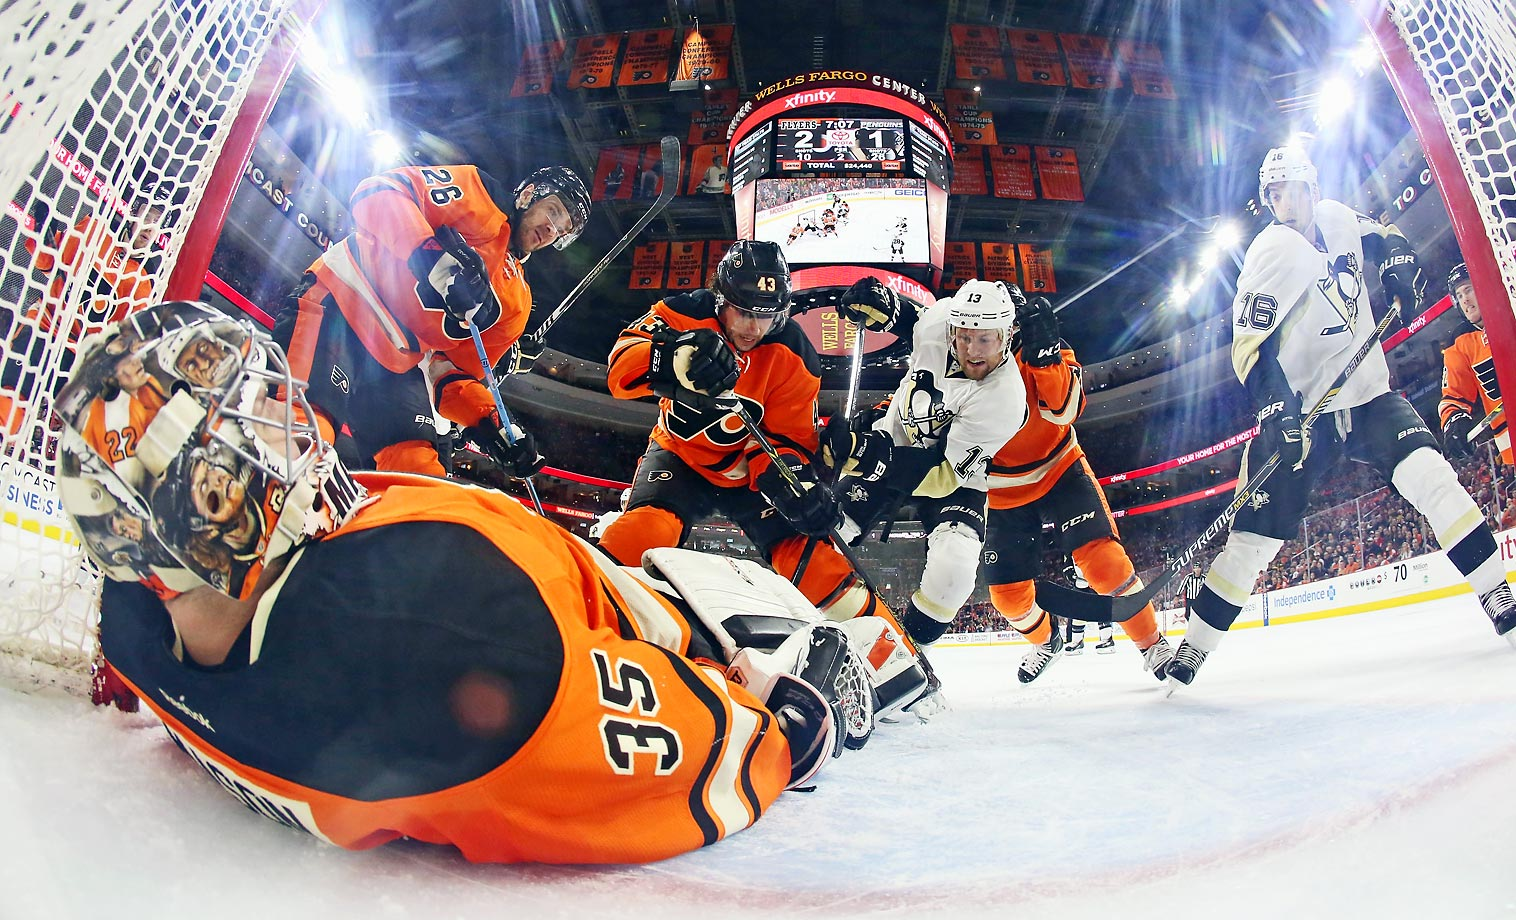 Steve Mason of the Flyers lays on the puck as teammates Carlo Colaiacovo, Brandon Manning and Zac Rinaldo try to defend against Nick Spaling and Brandon Sutter of the Penguins.